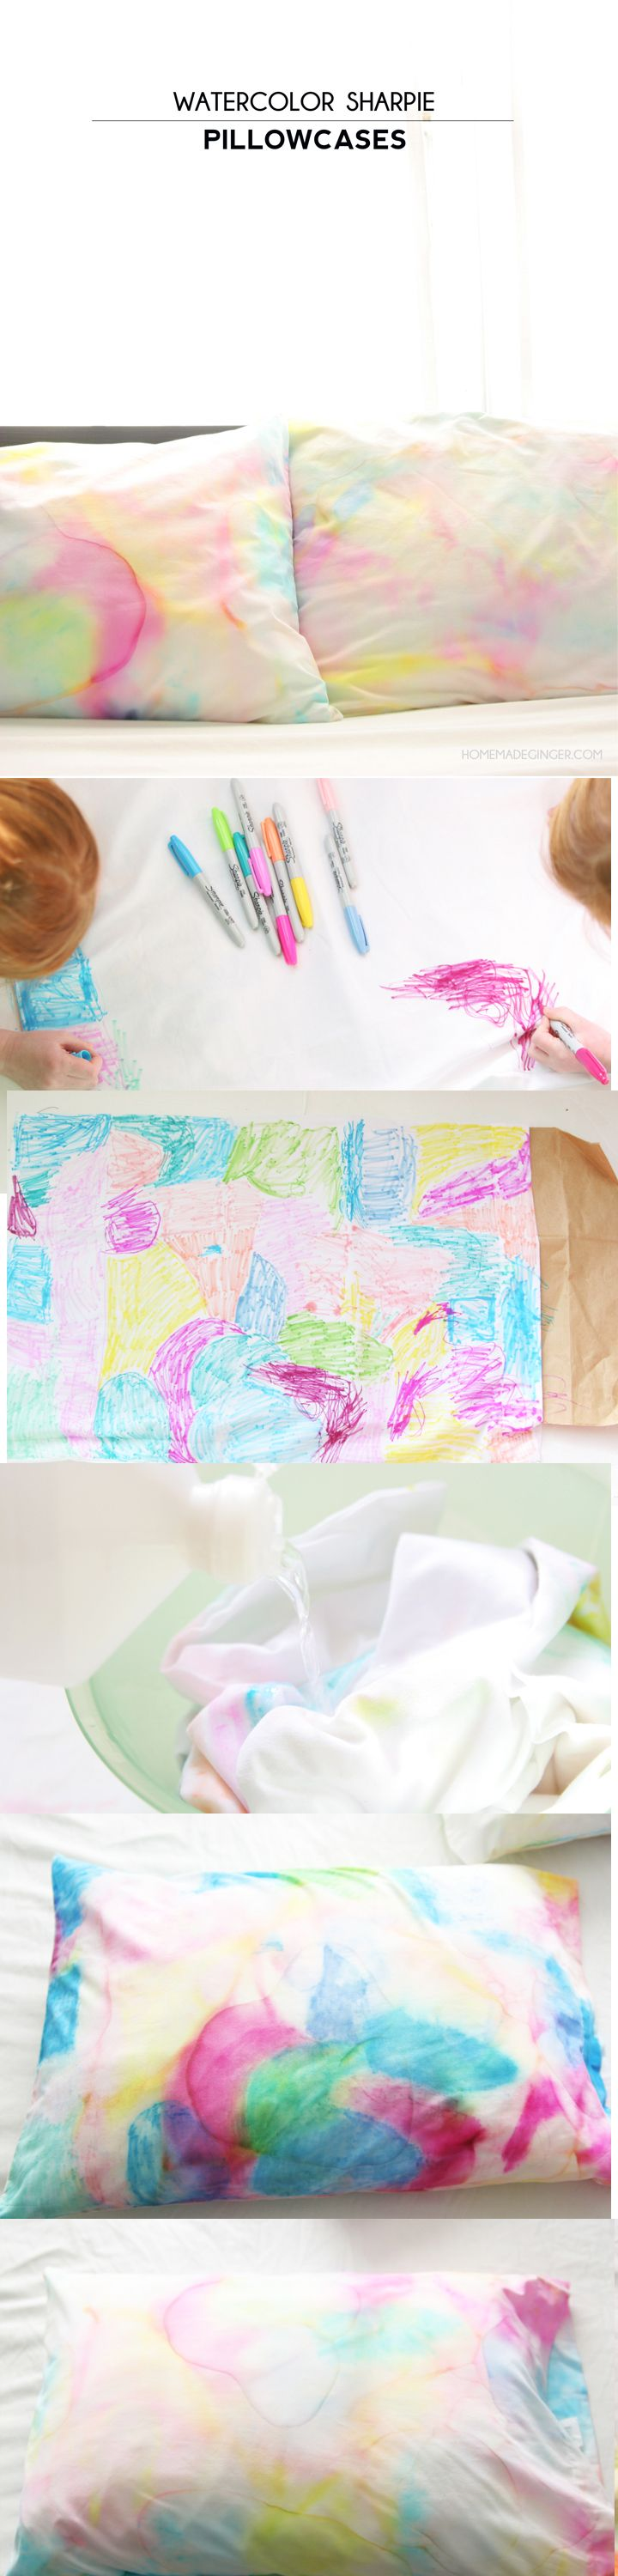 Create beautiful watercolor pillowcases using just Sharpies and alcohol! #stockup4schools #pmedia #ad @staples